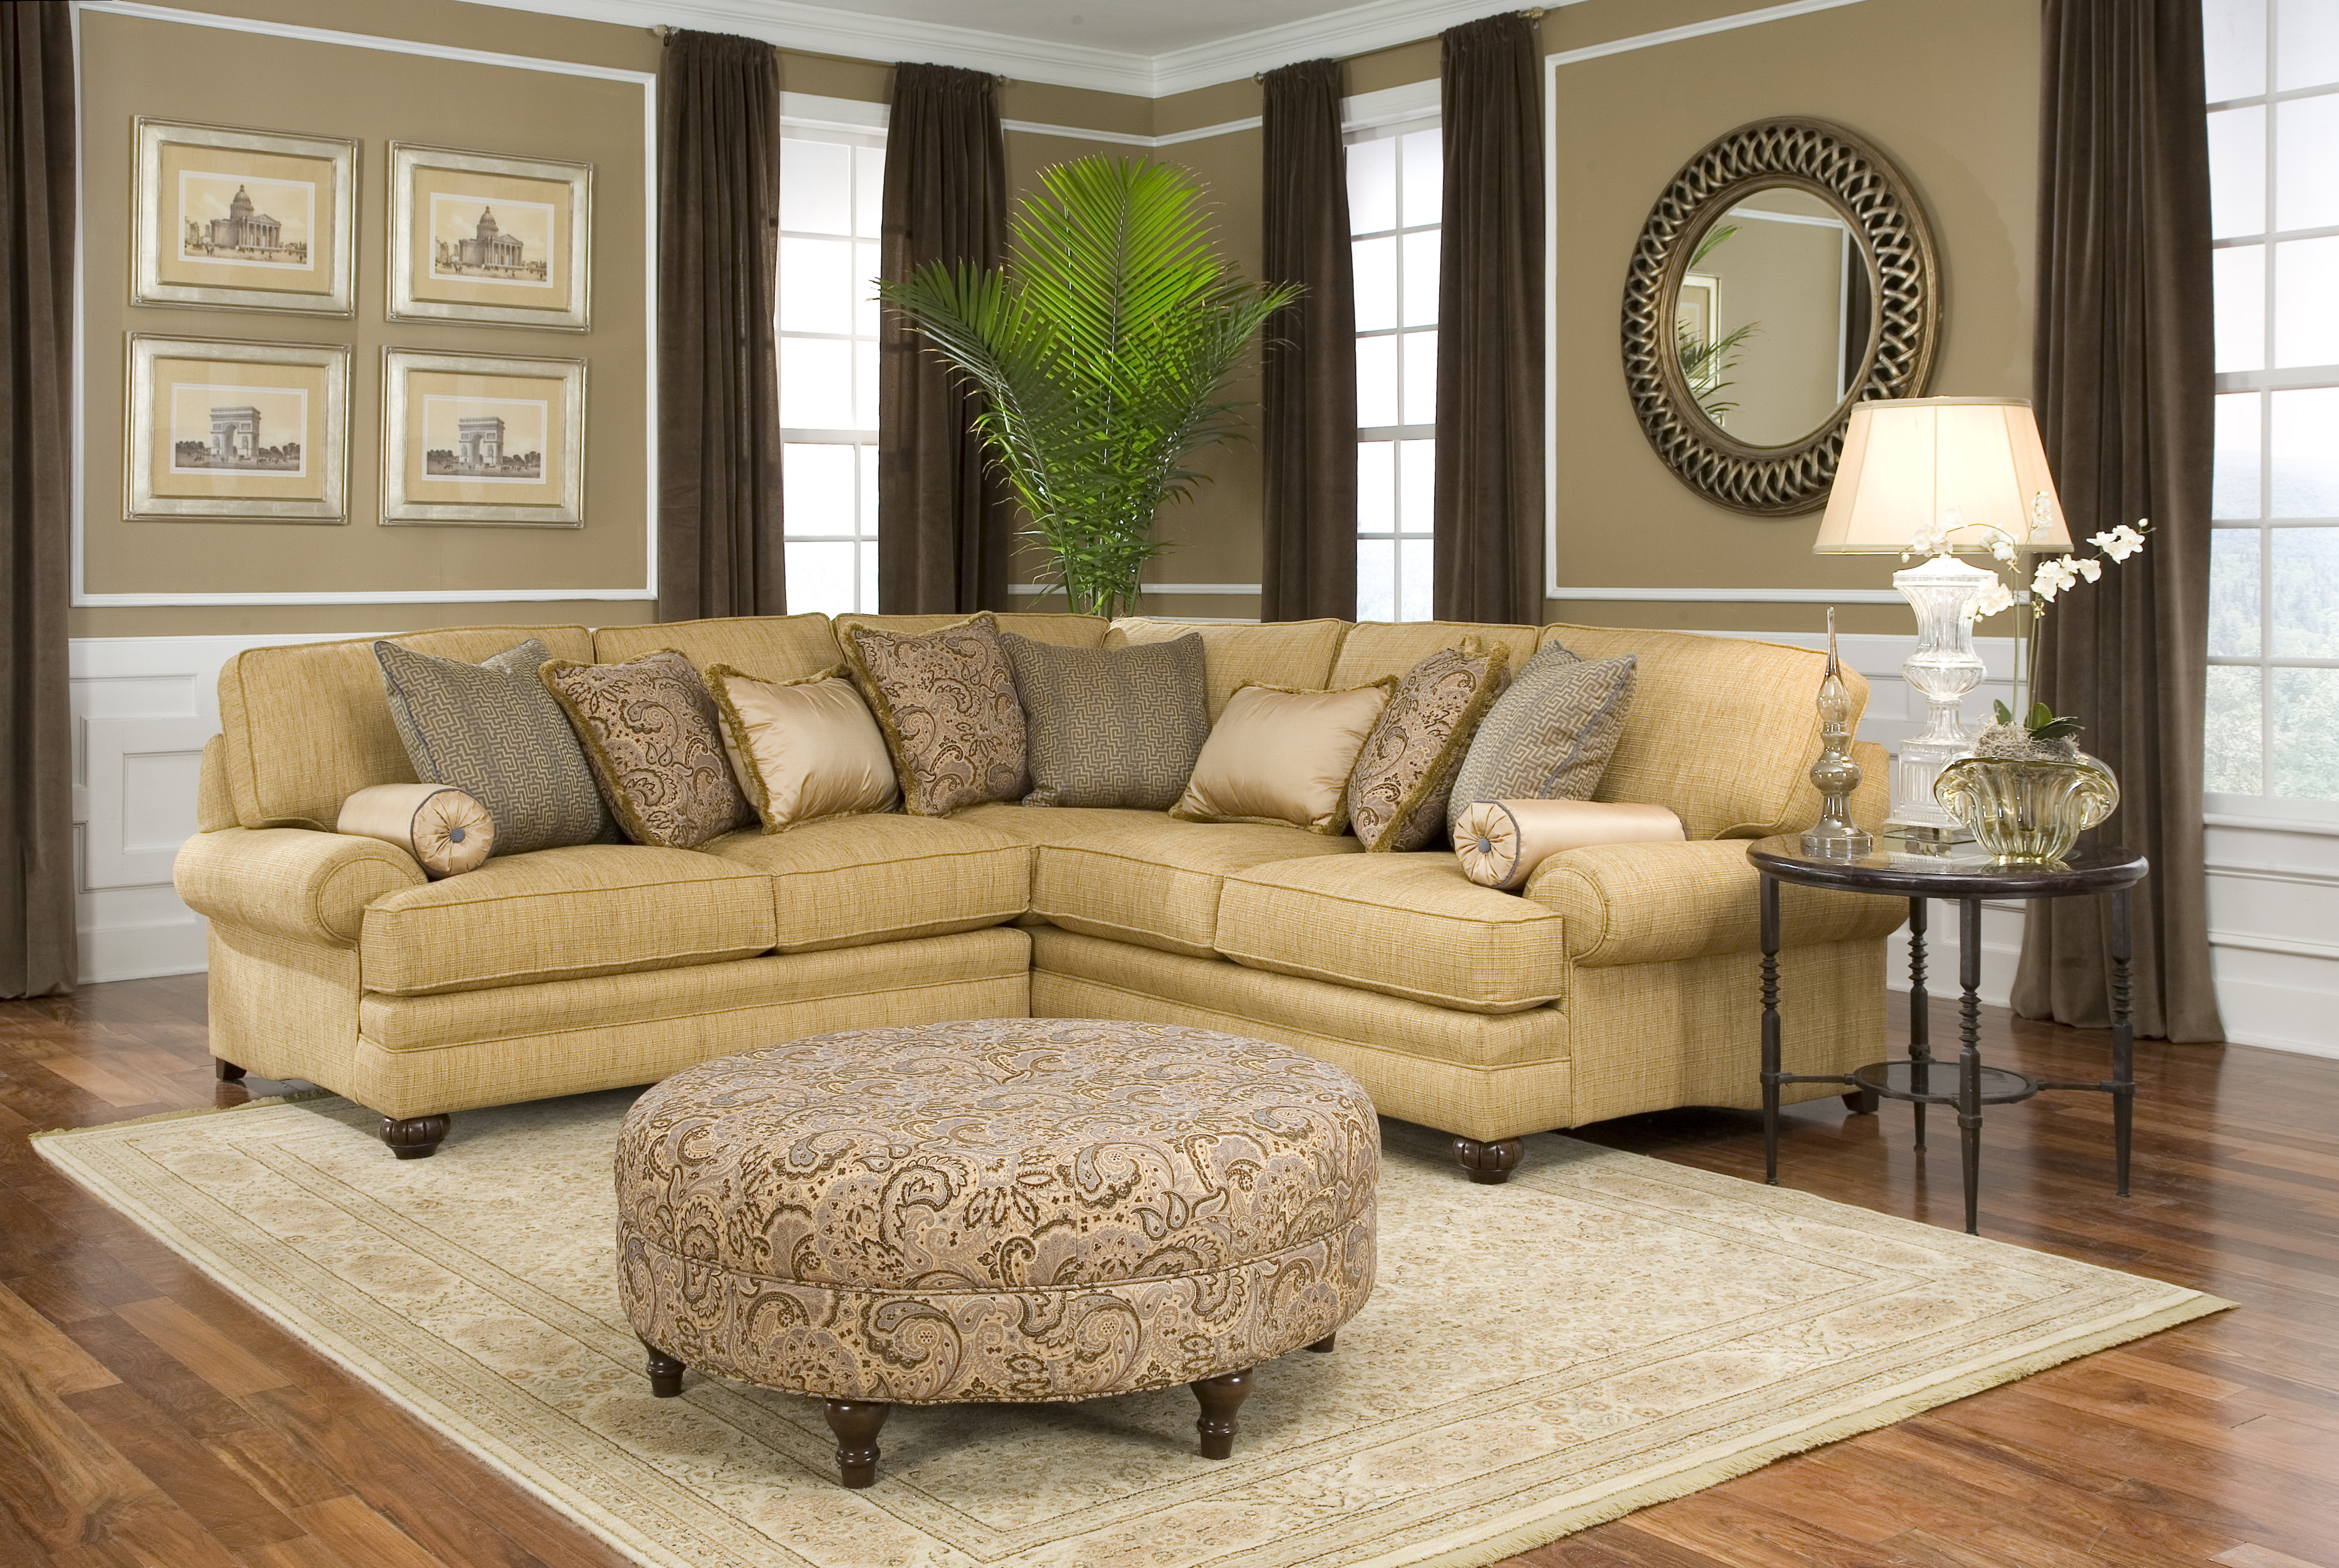 Awesome Smith Brothers Sofa Marmsweb Marmsweb